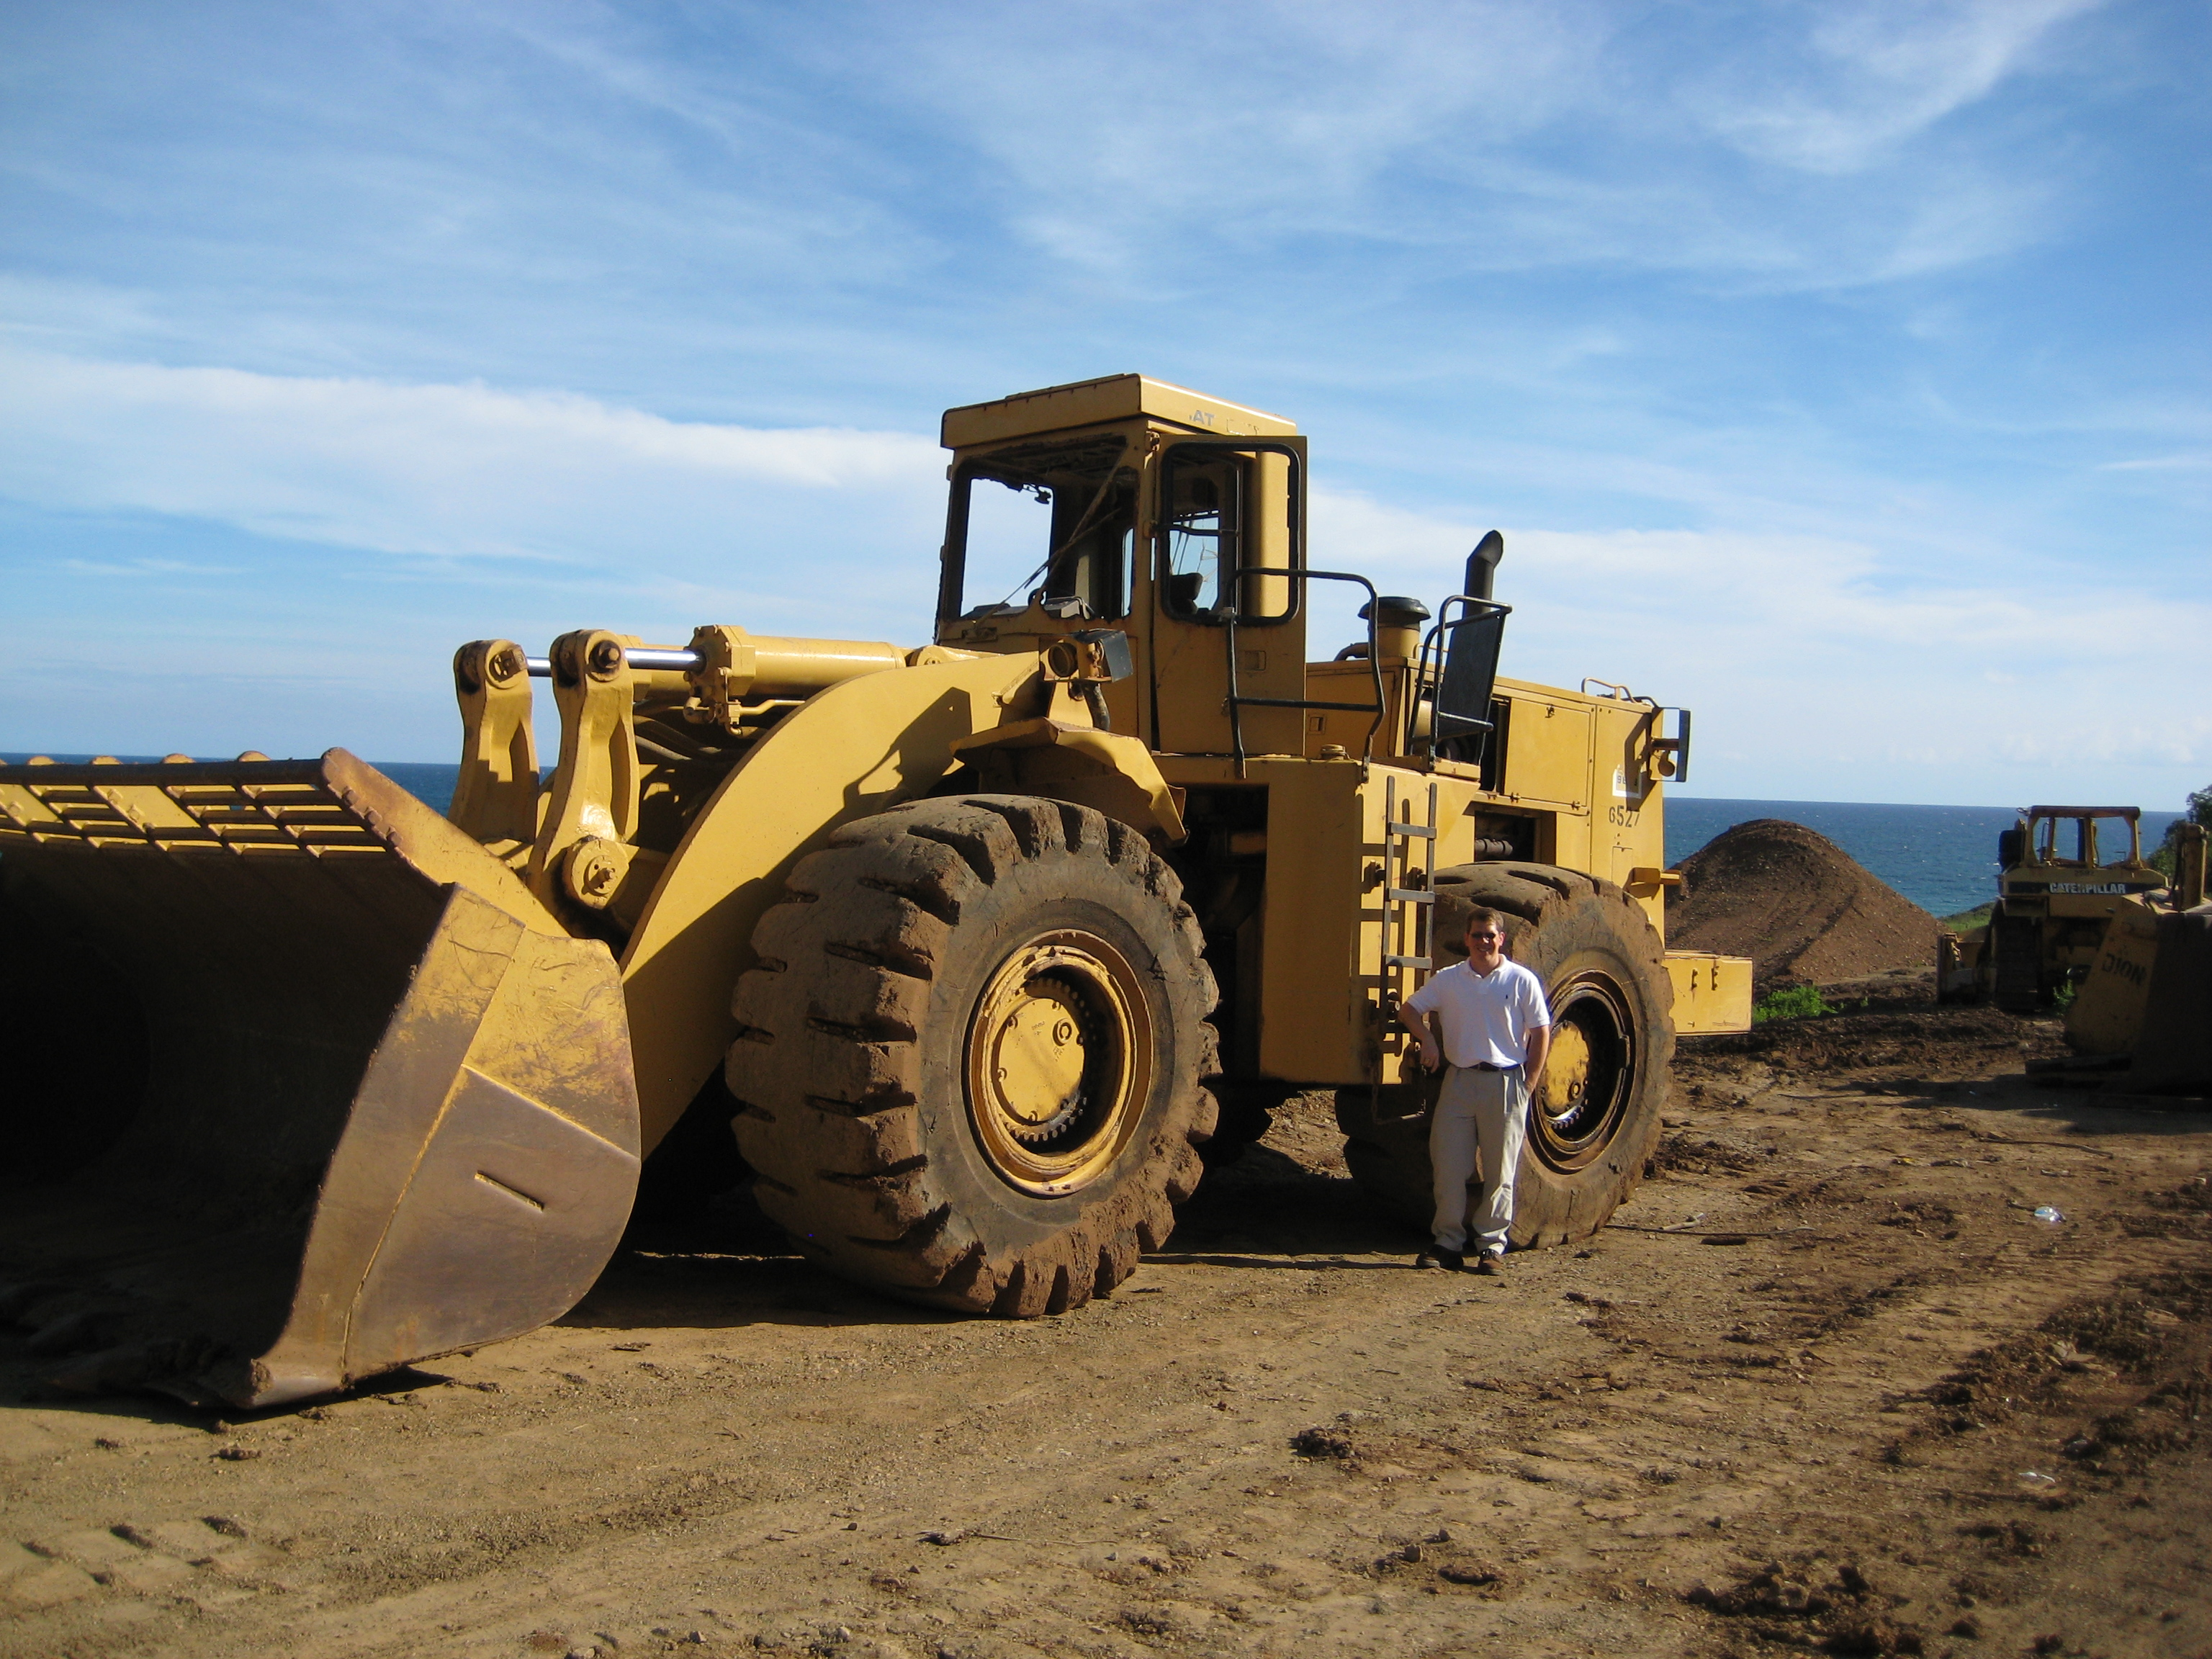 Caterpillar 988 photo - 1